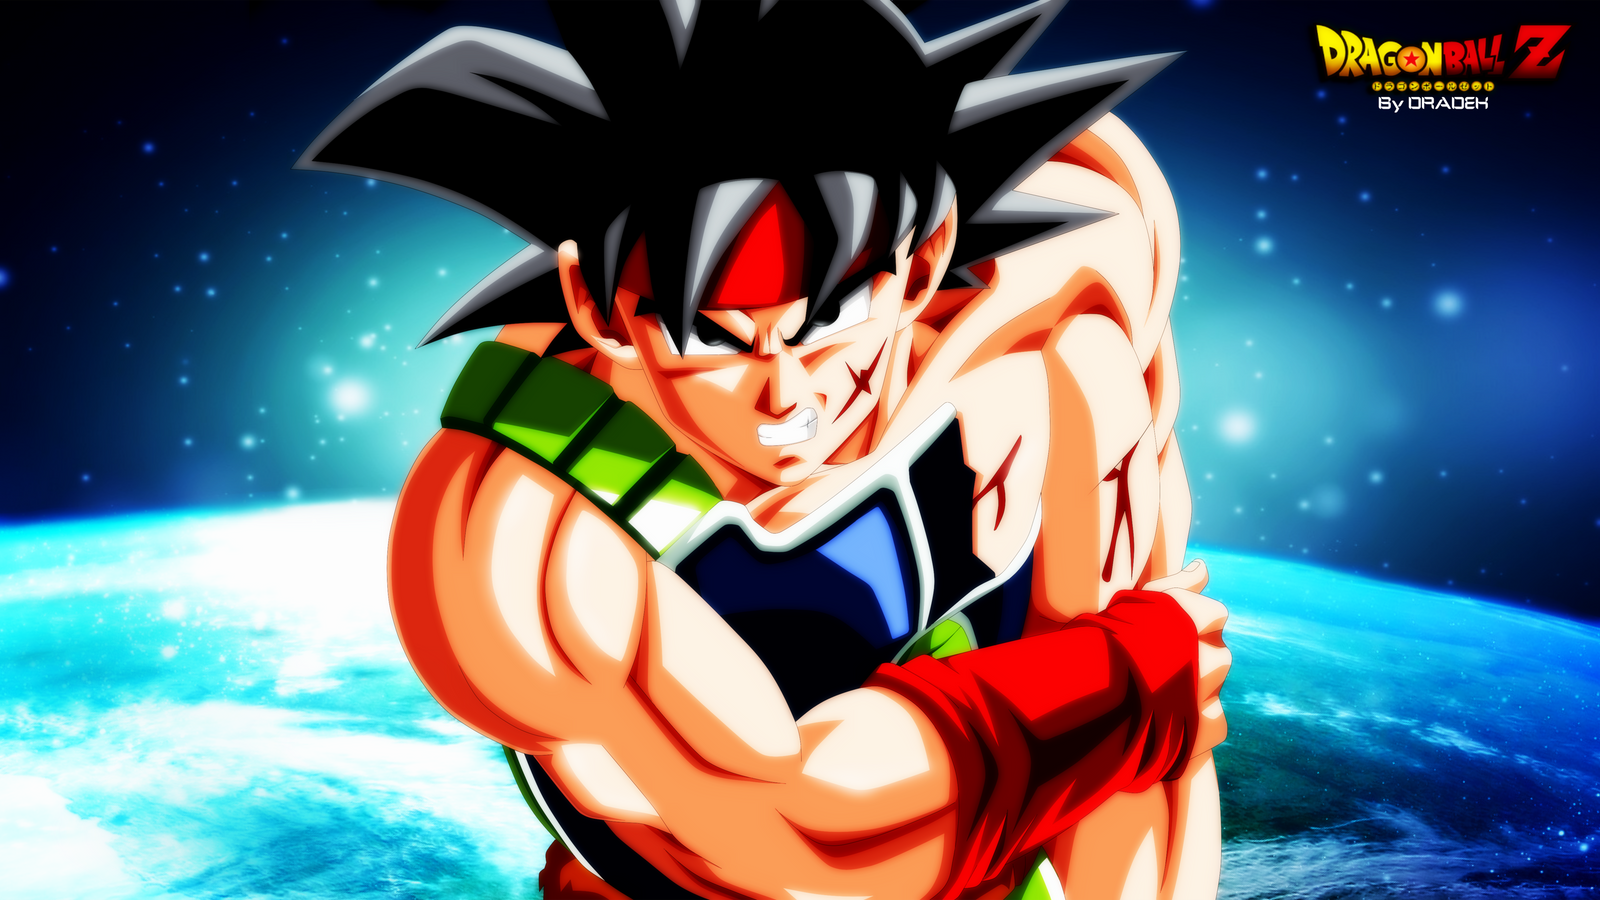 dragon ball z live wallpapers for android